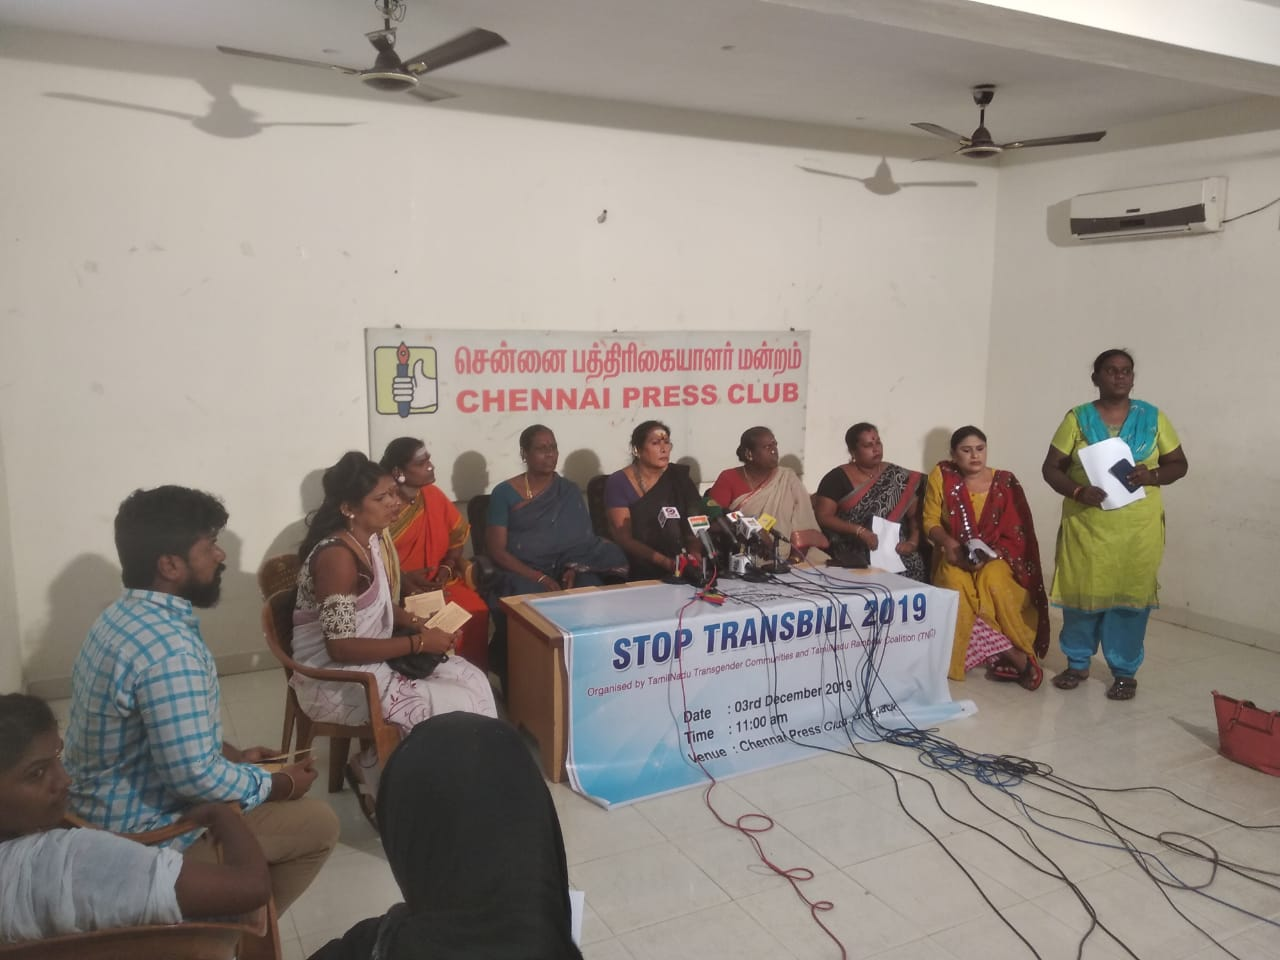 photo from Chennai protestagainst TransBill Dec 3, 2019